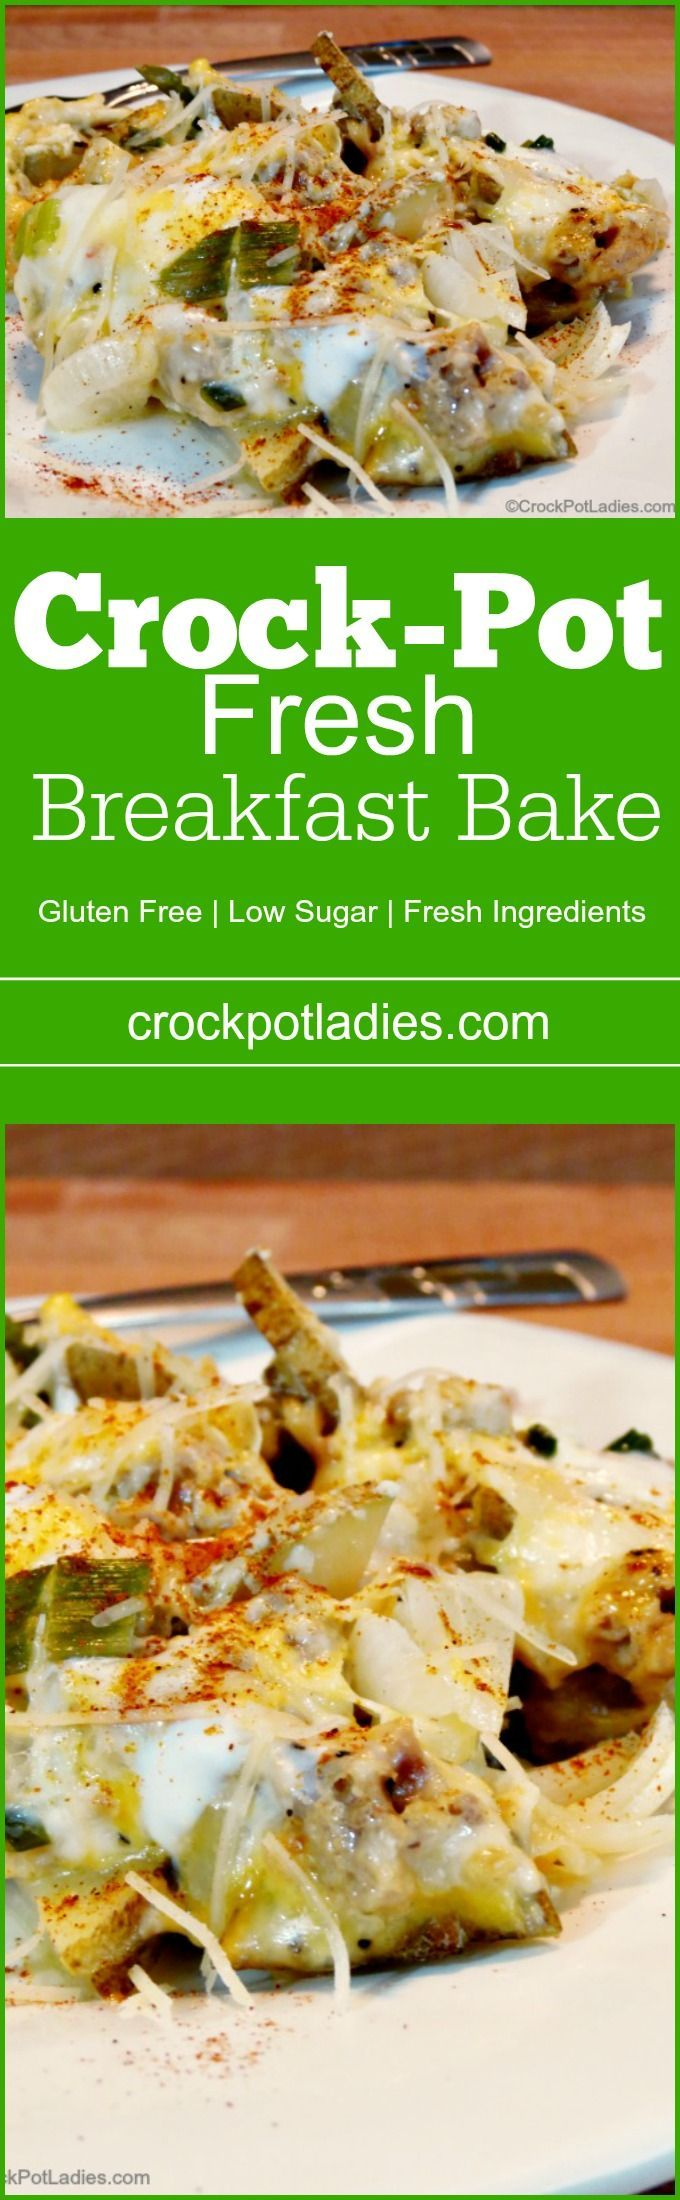 473 best american food recipes images on pinterest drink petit crock pot fresh breakfast bake forumfinder Choice Image